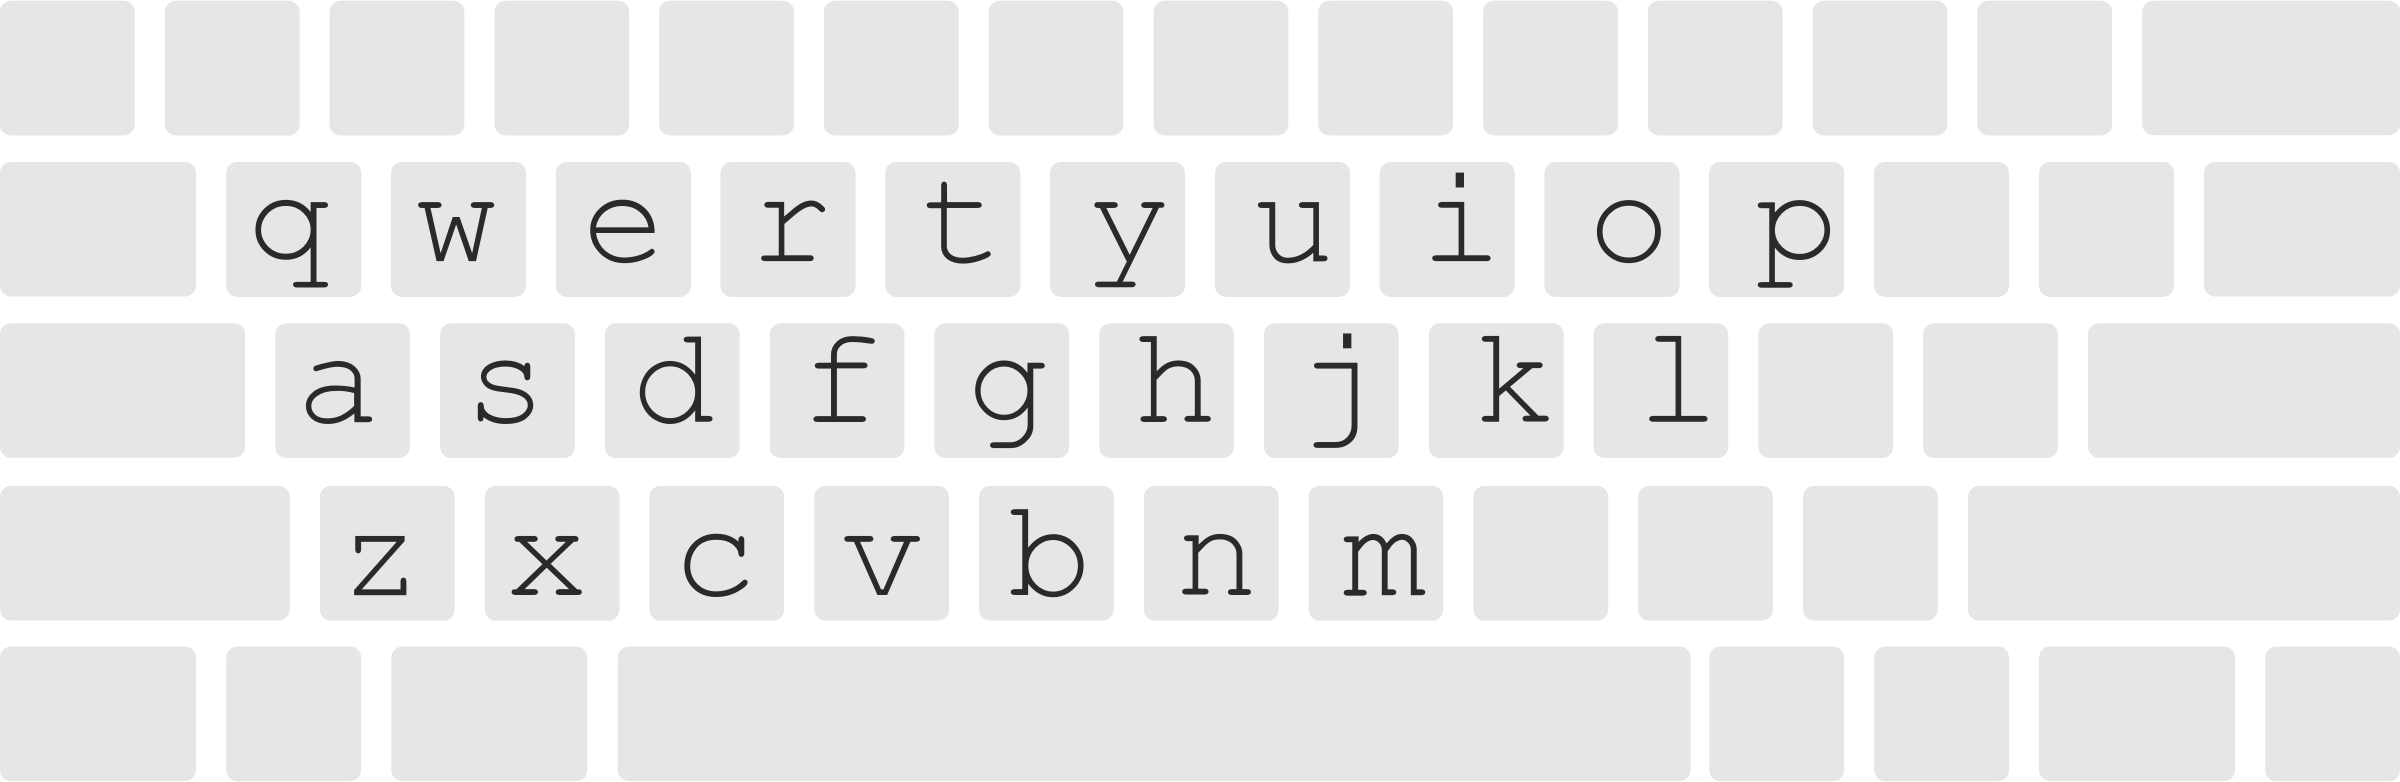 Keyboard layout with letters by pnx